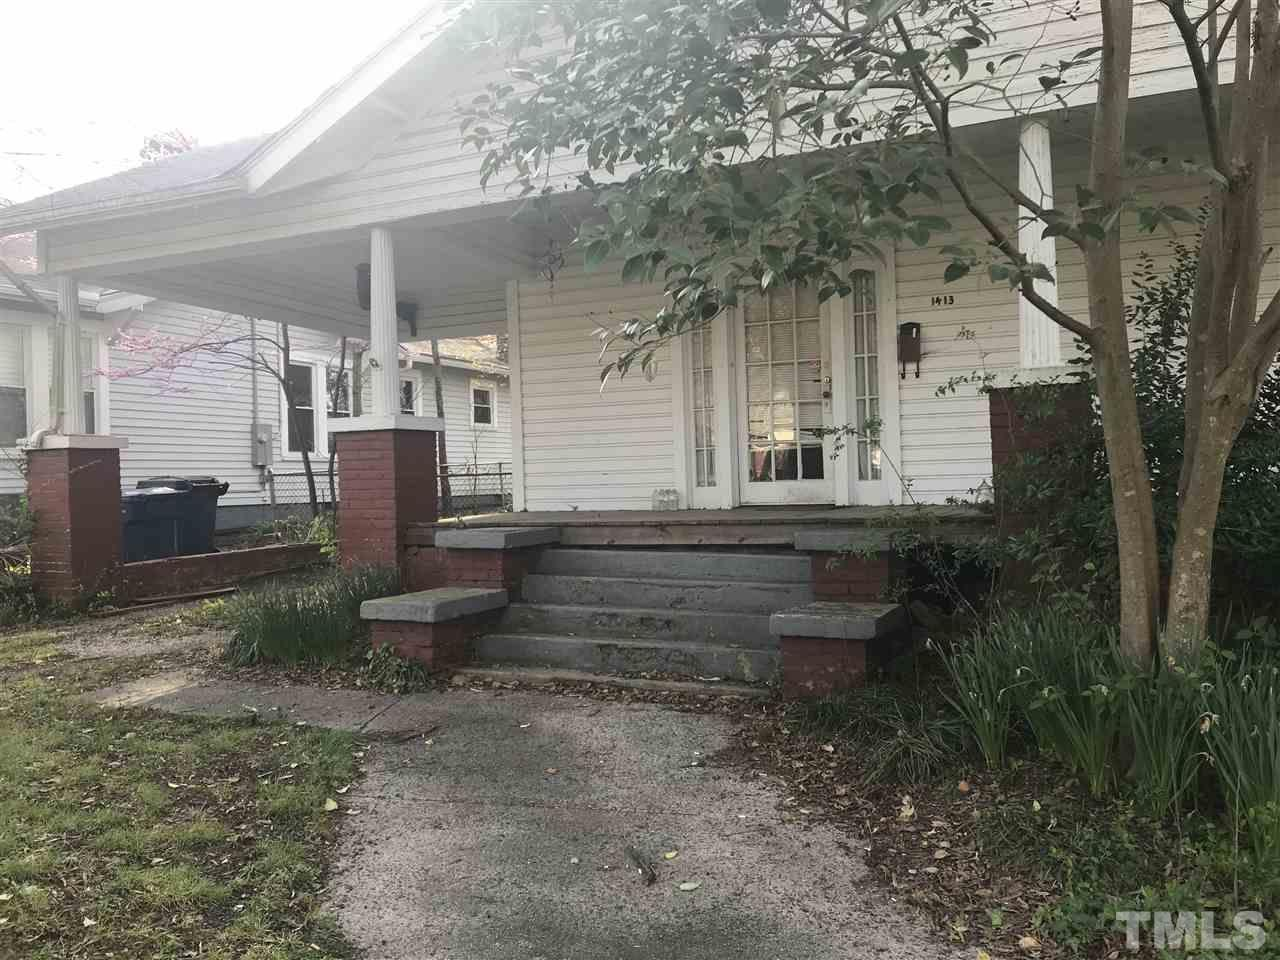 Gorgeous Bungalow in need of some TLC/renovation. Large front porch with porte-cochère. Big rooms and high ceilings located in desirable Trinity Park.